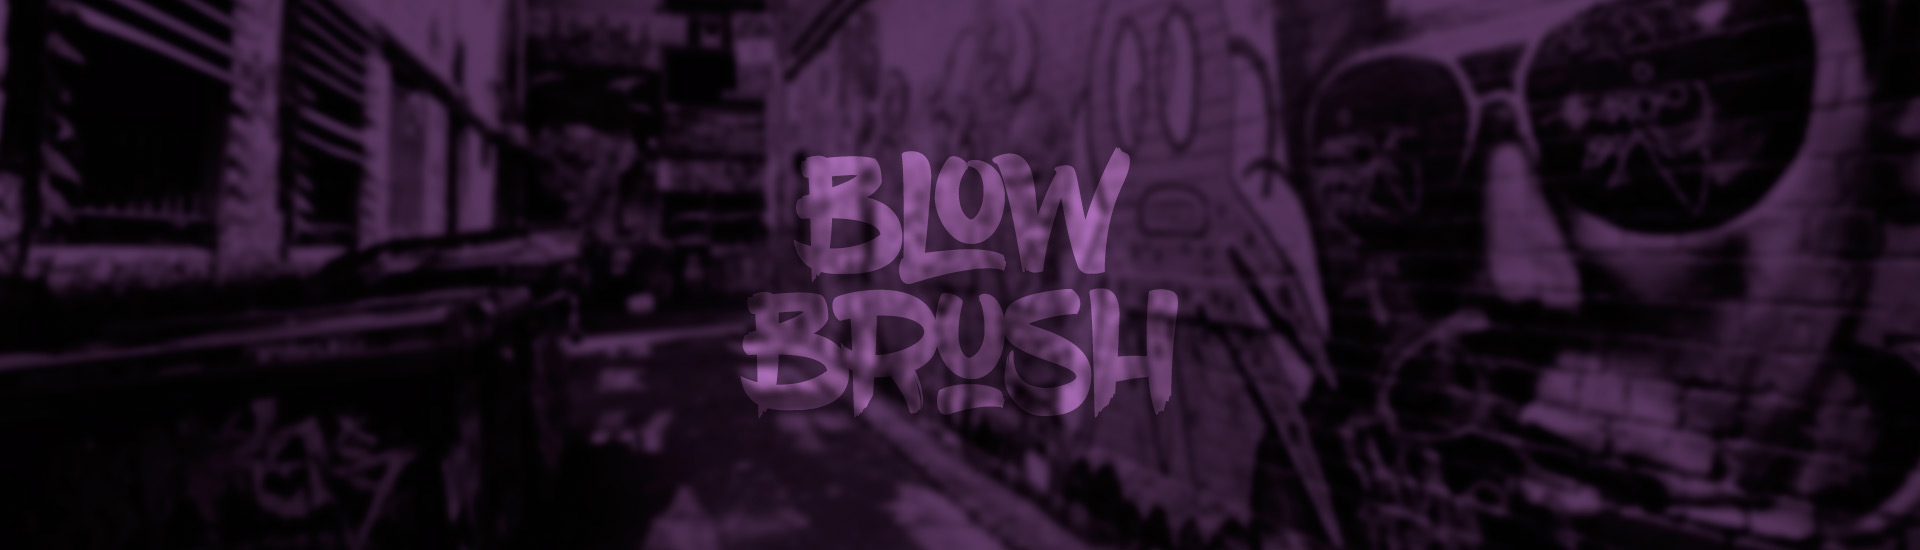 Fonte free – Blow Brush